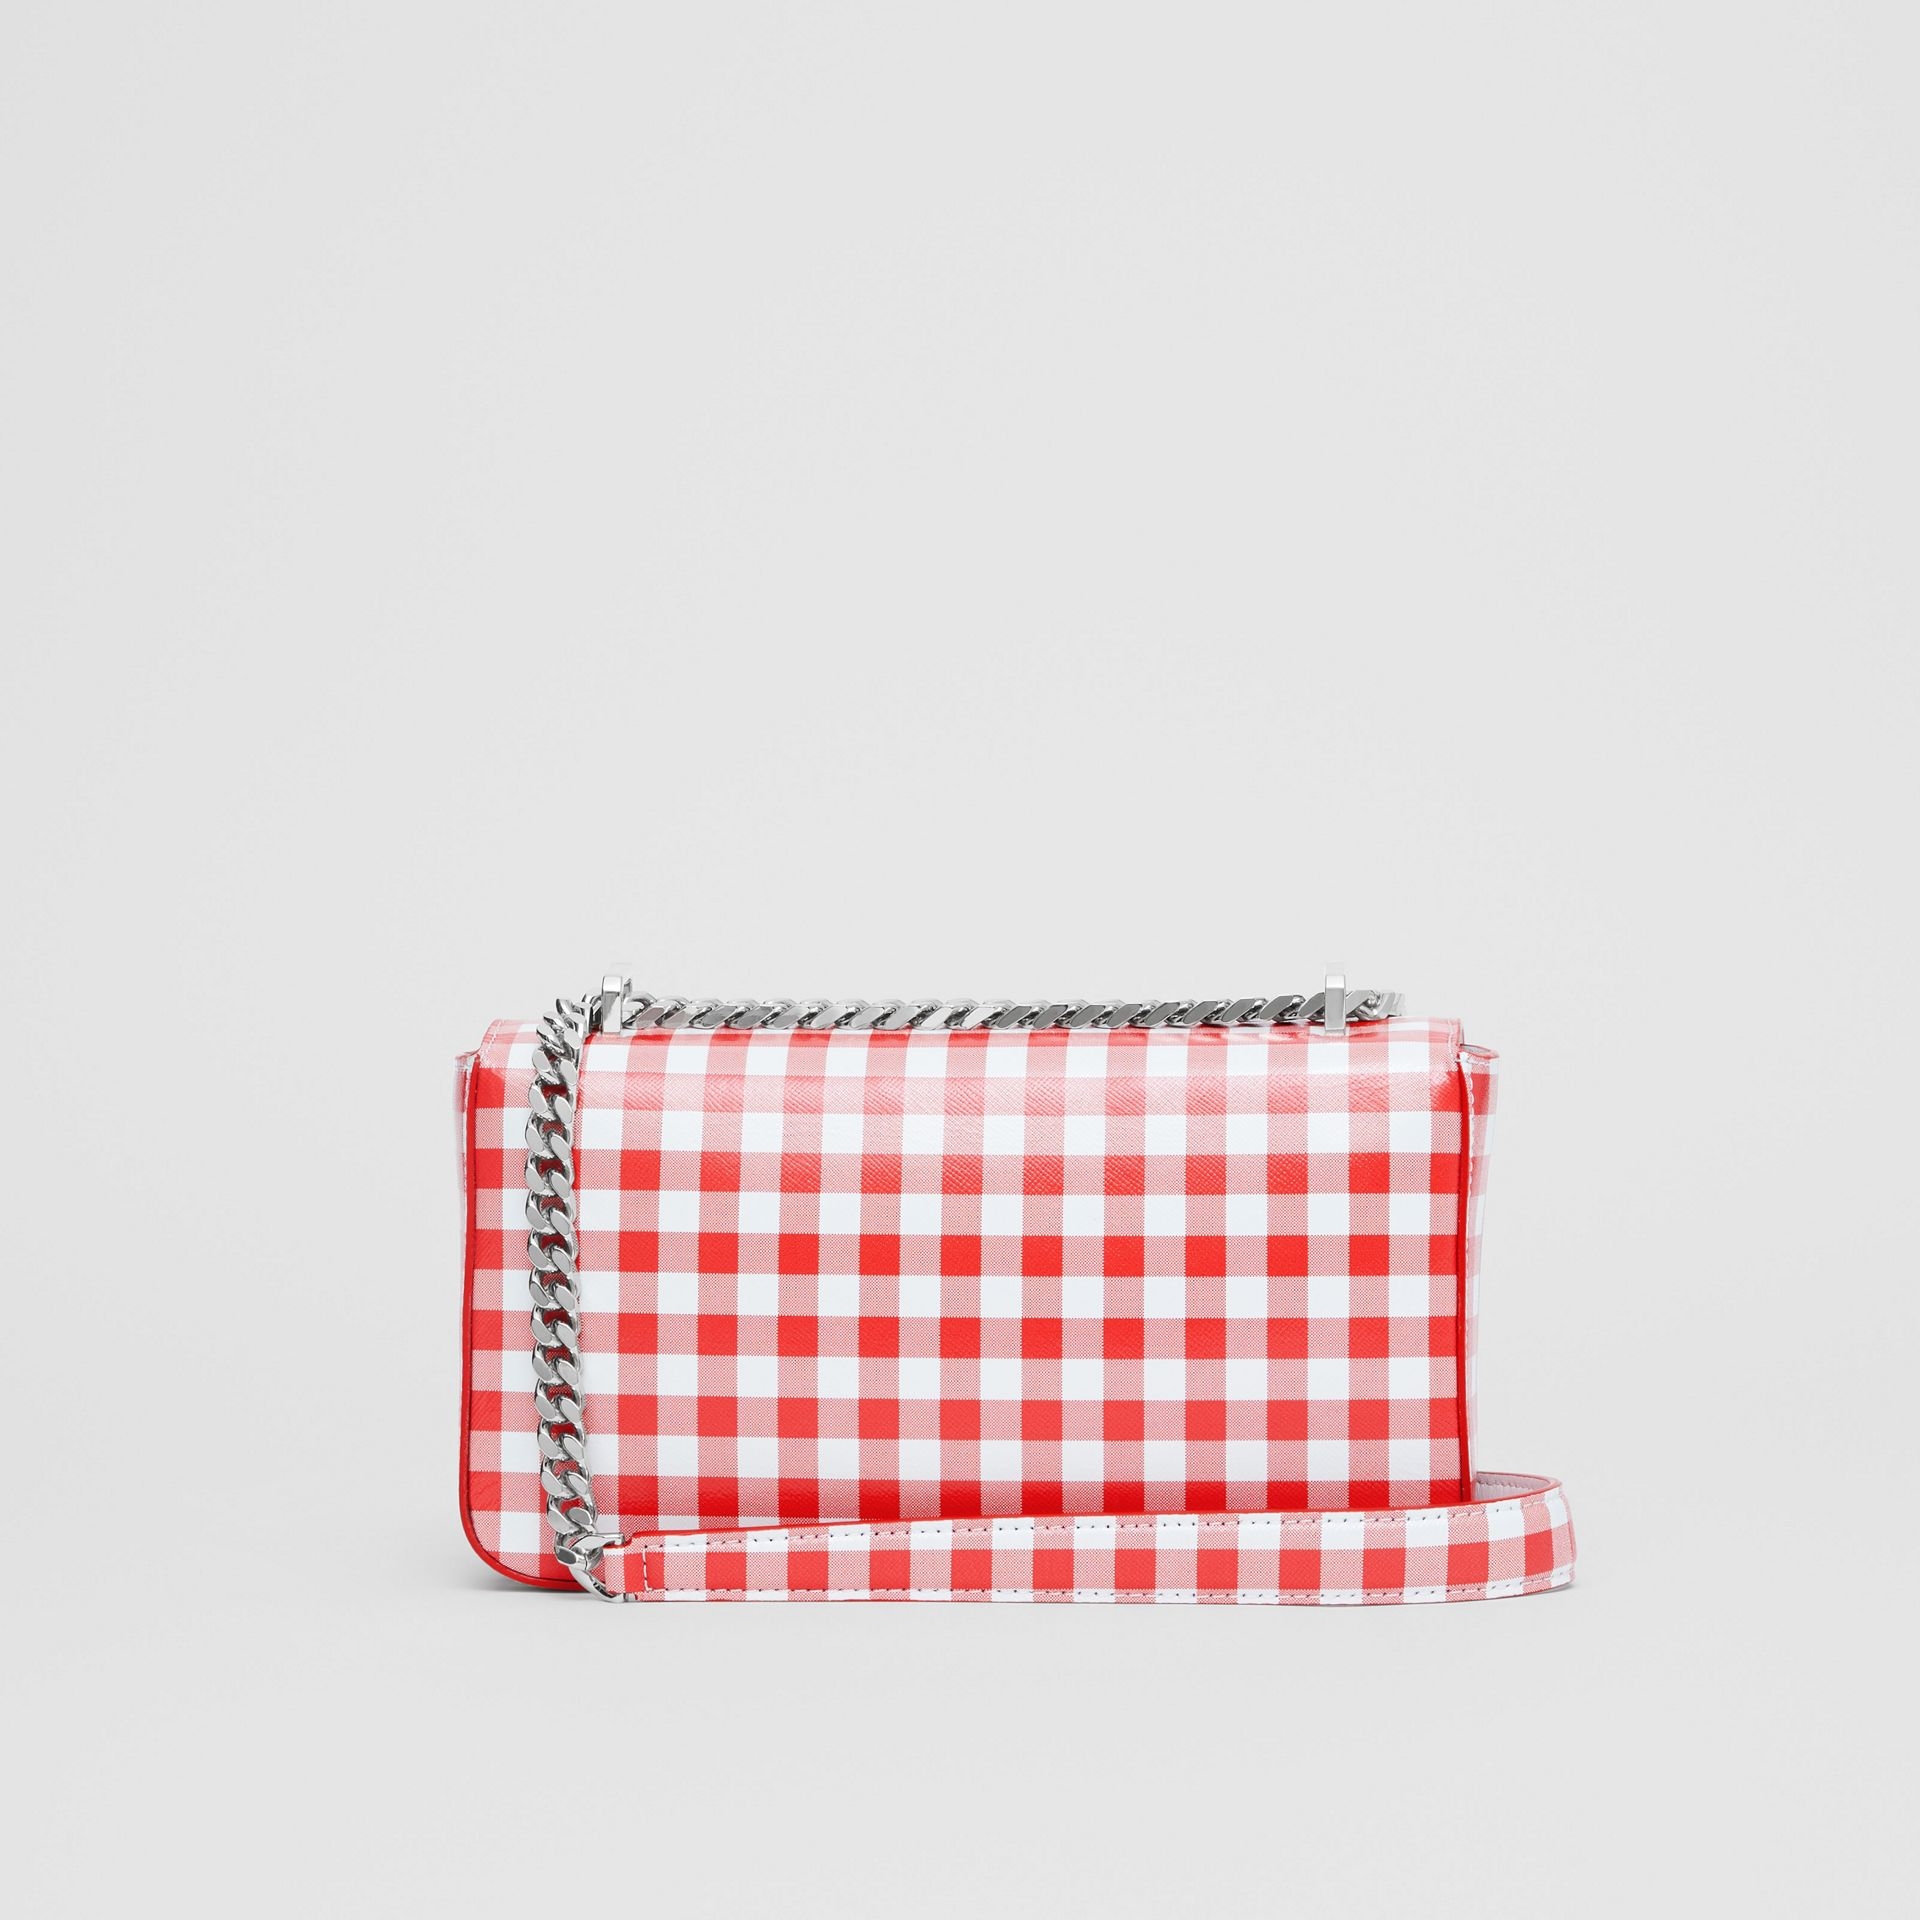 Small Gingham Leather Lola Bag in Red - Women | Burberry - gallery image 5